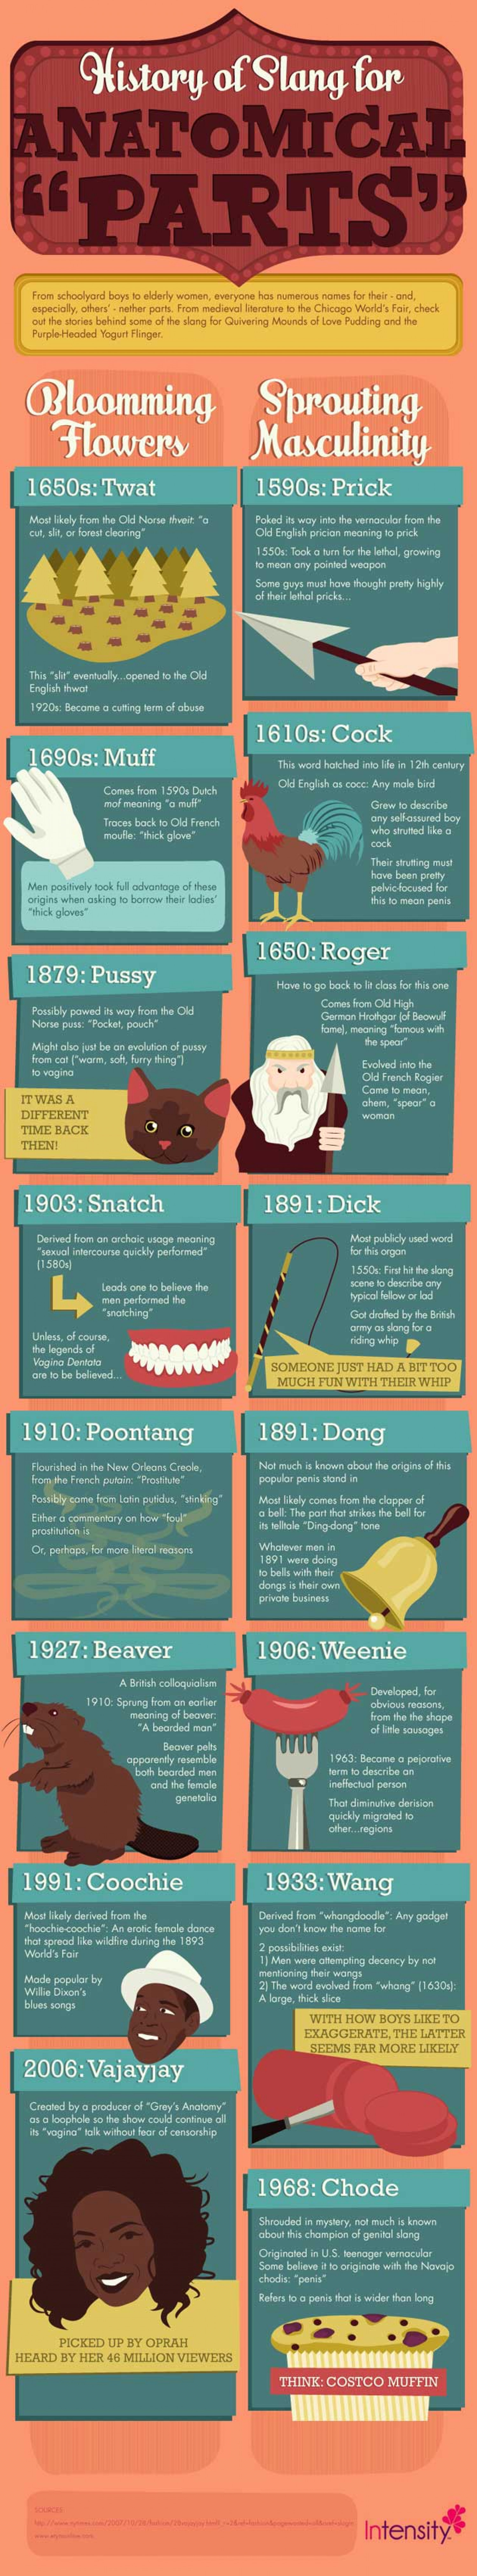 Crotch Shots: The Definitive Guide to Anatomical Slang  Infographic